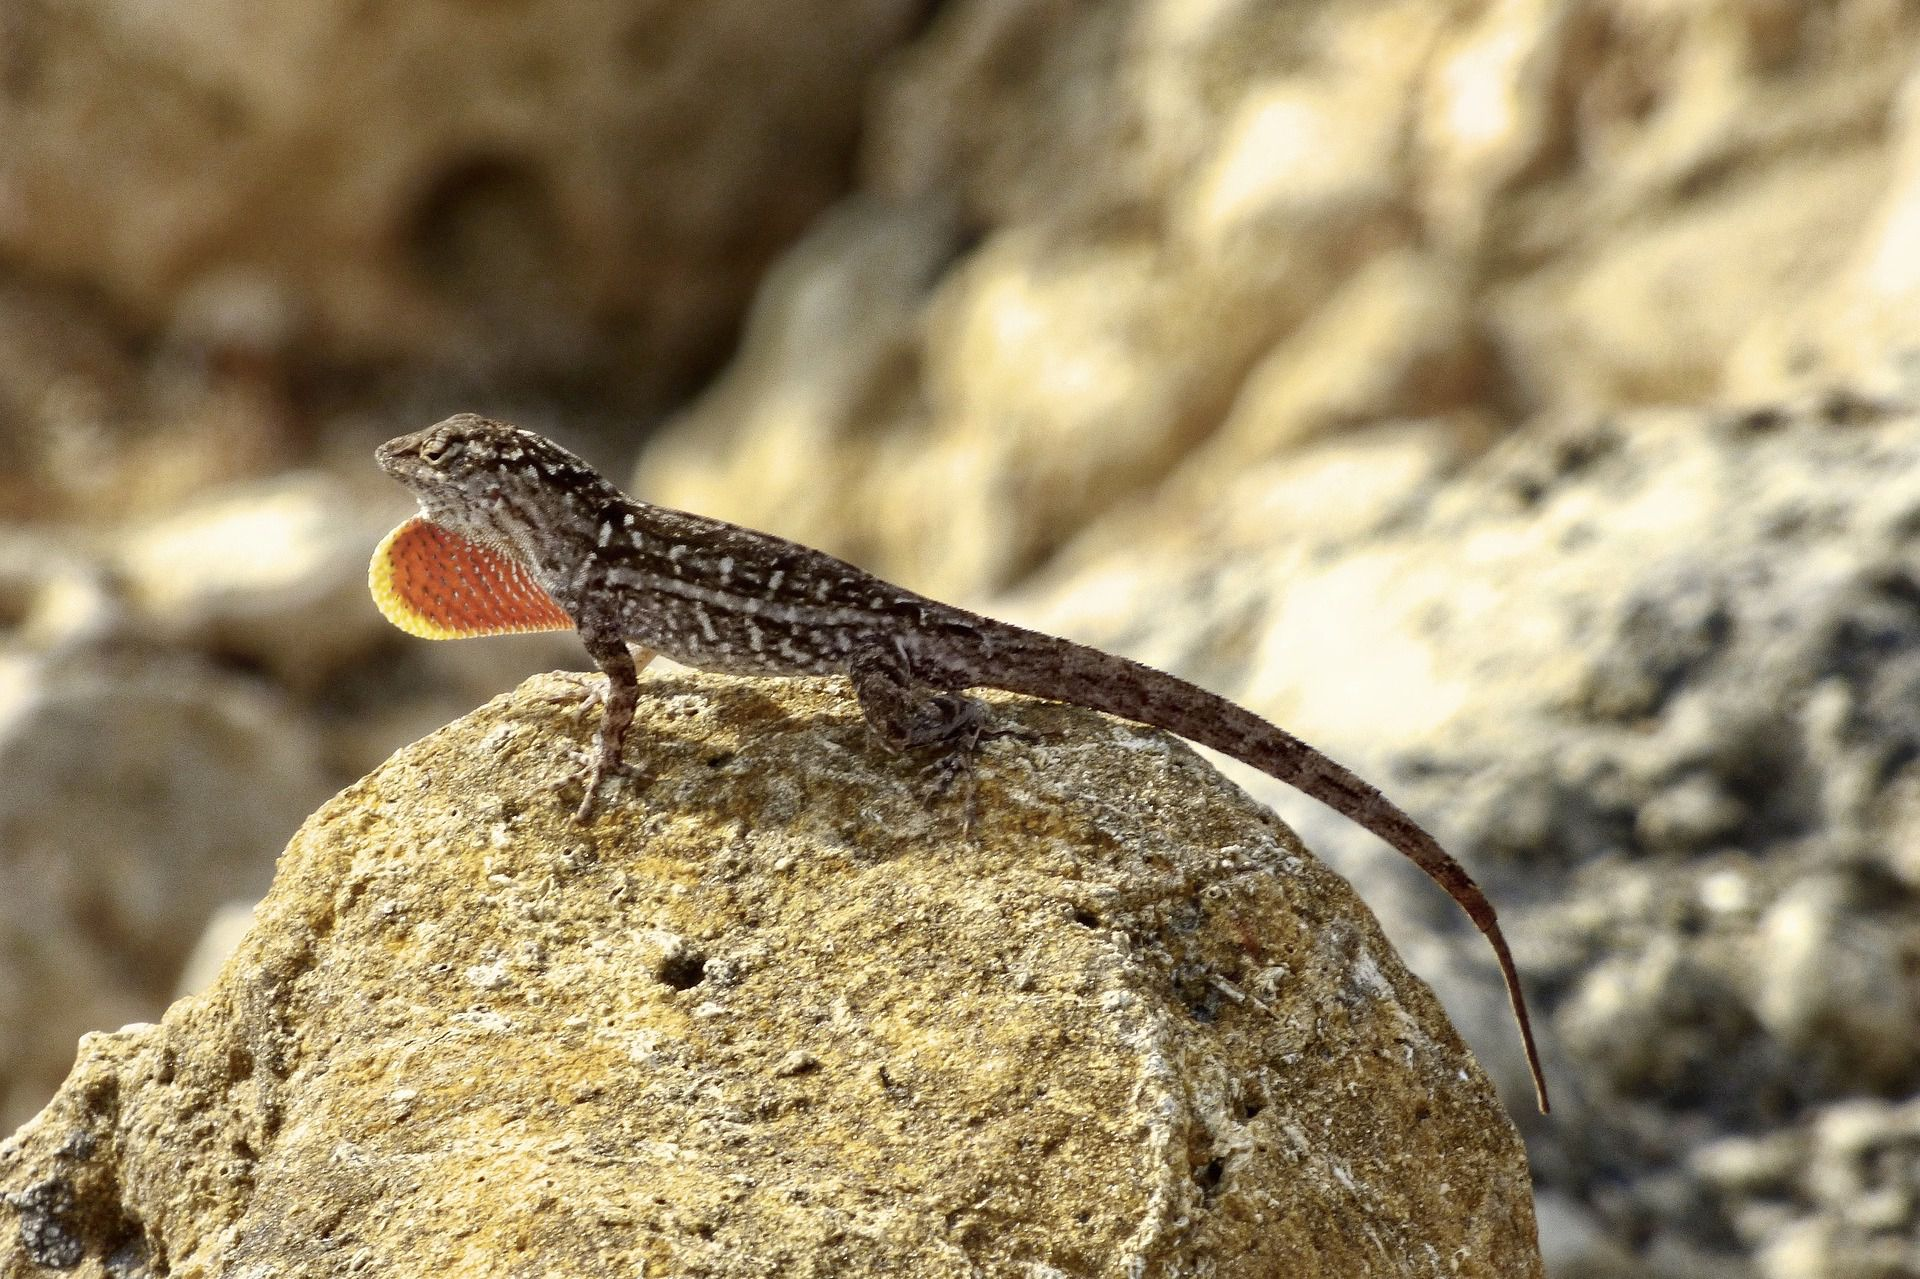 Caught in a race against climate change, lizards hit an